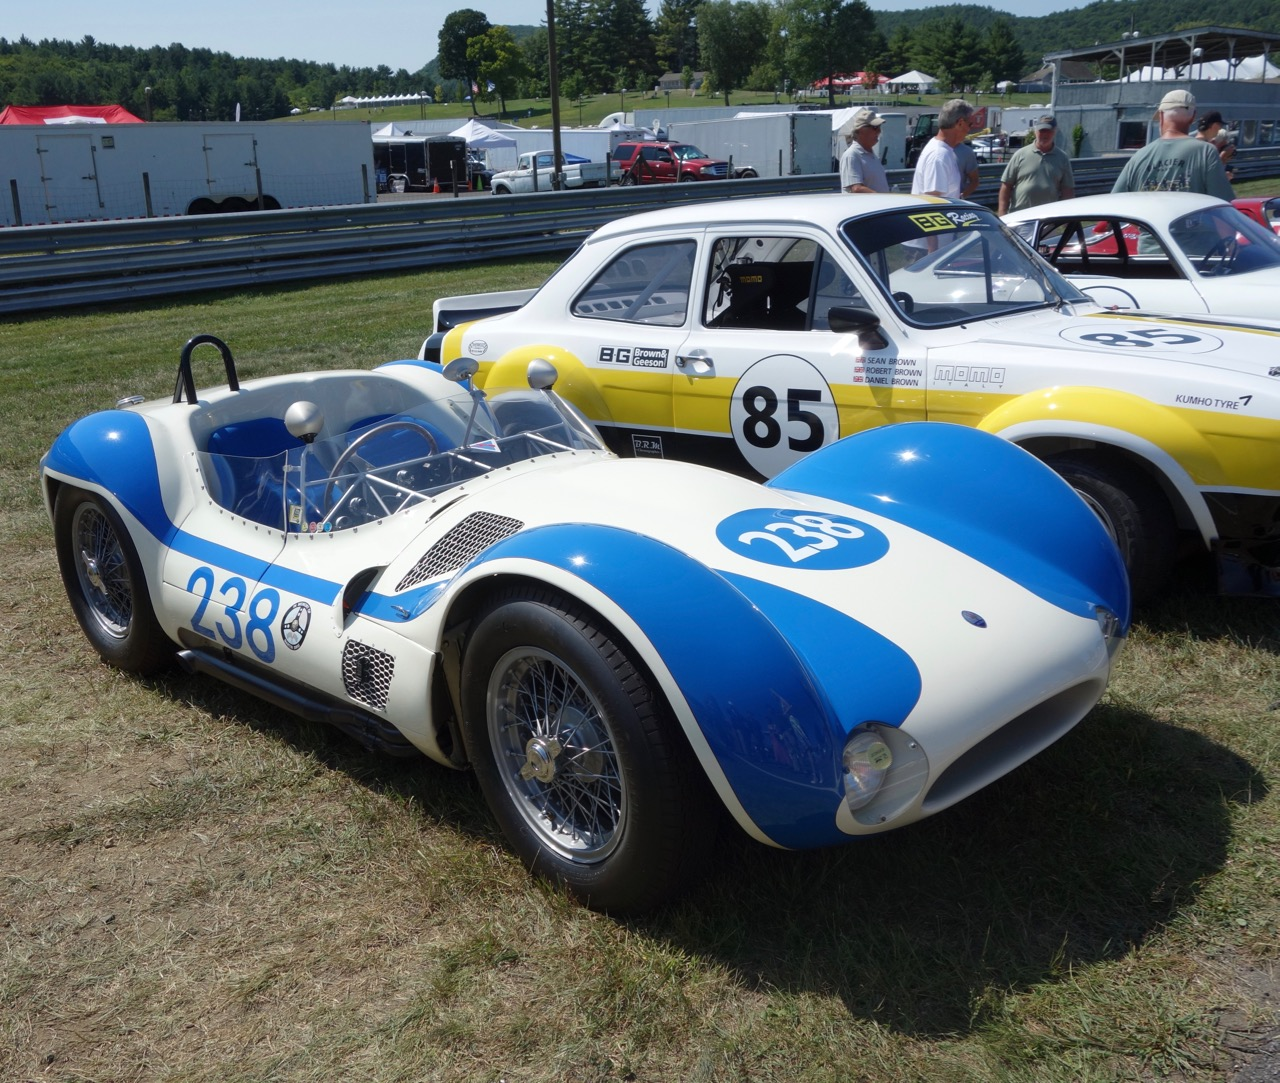 Best of show was this Birdcage Maserati